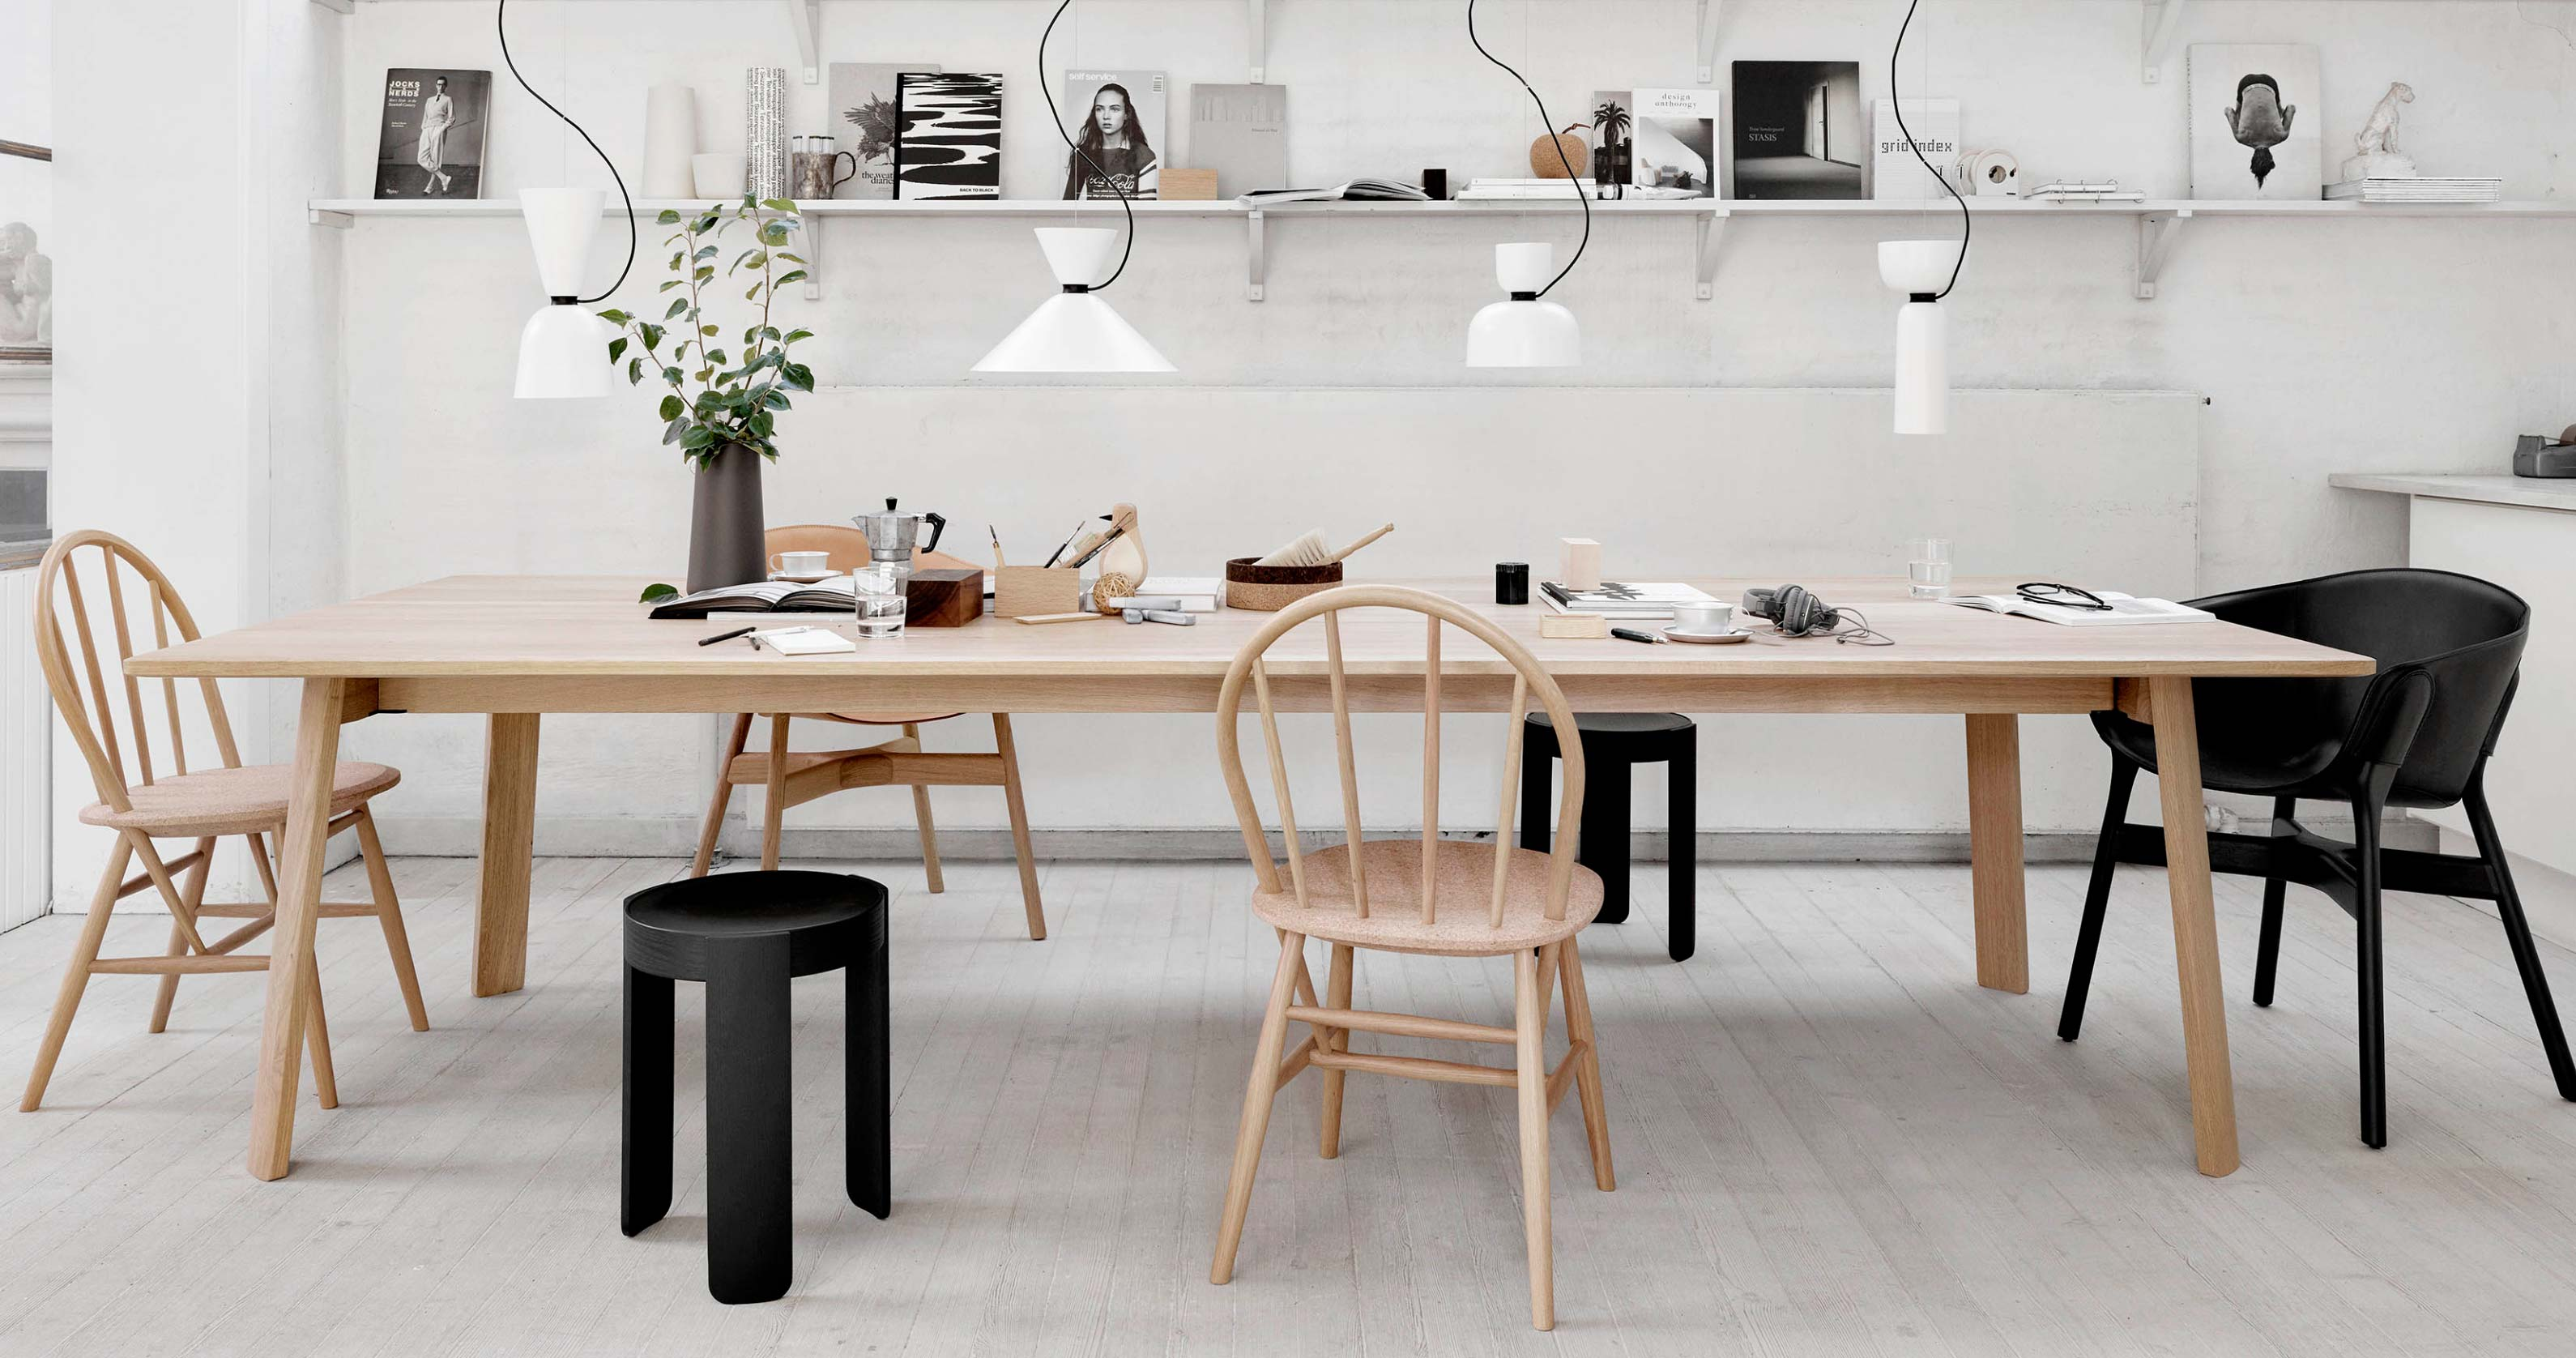 6 Simple Steps To Making Your Office A Great Place To Work